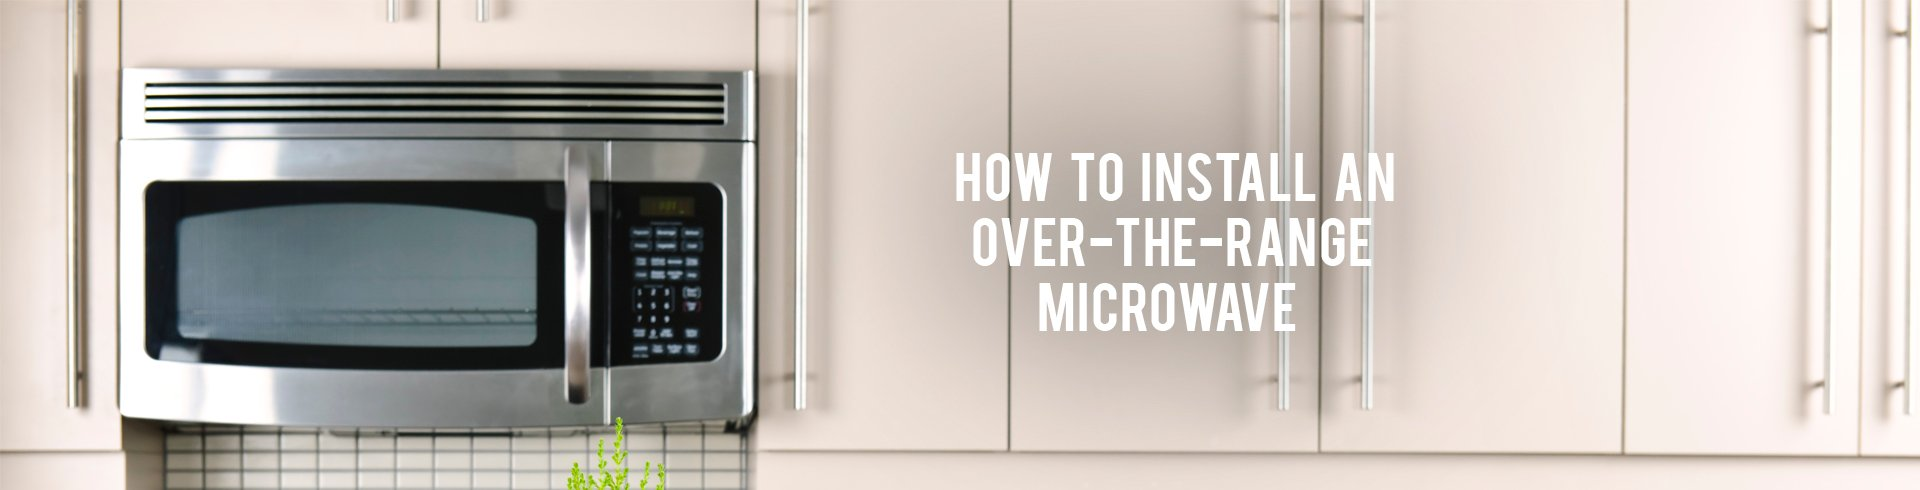 Installing an over the range microwave - Installing An Over The Range Microwave 52